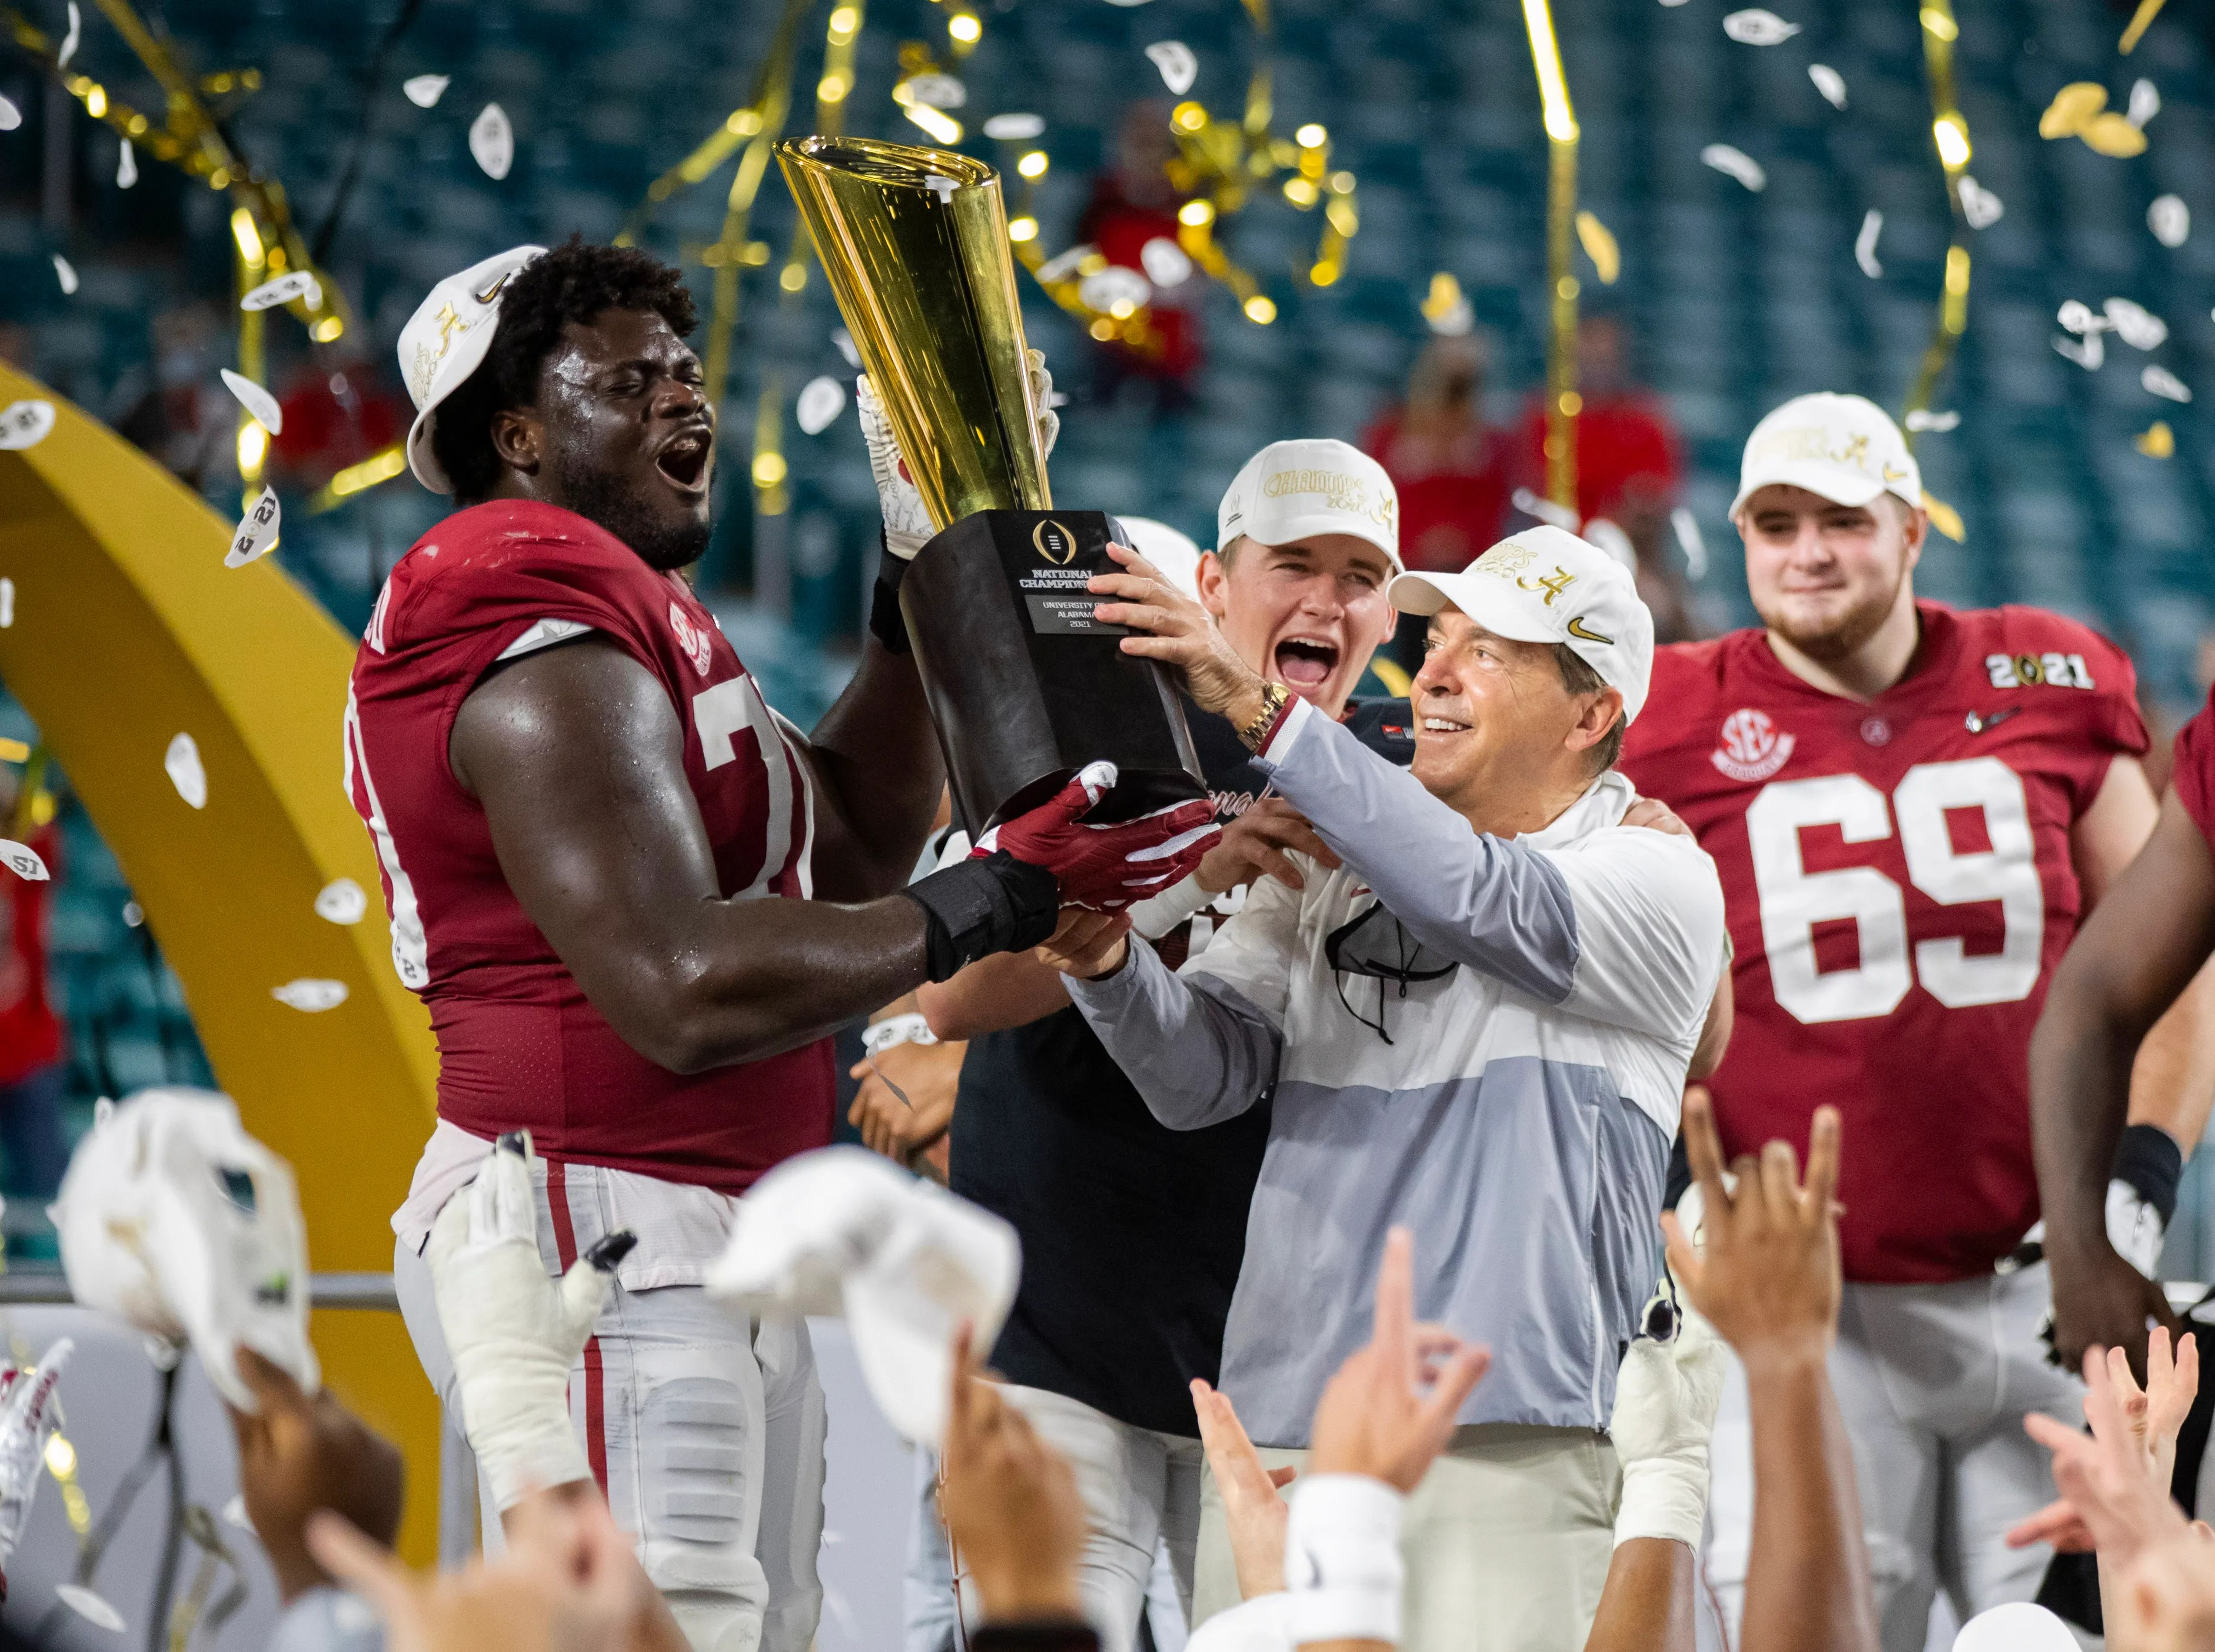 Alabama coach Nick Saban and offensive lineman Alex Leatherwood celebrated with the National Championship trophy after defeating Ohio State in the 2021 CFP National Championship game.